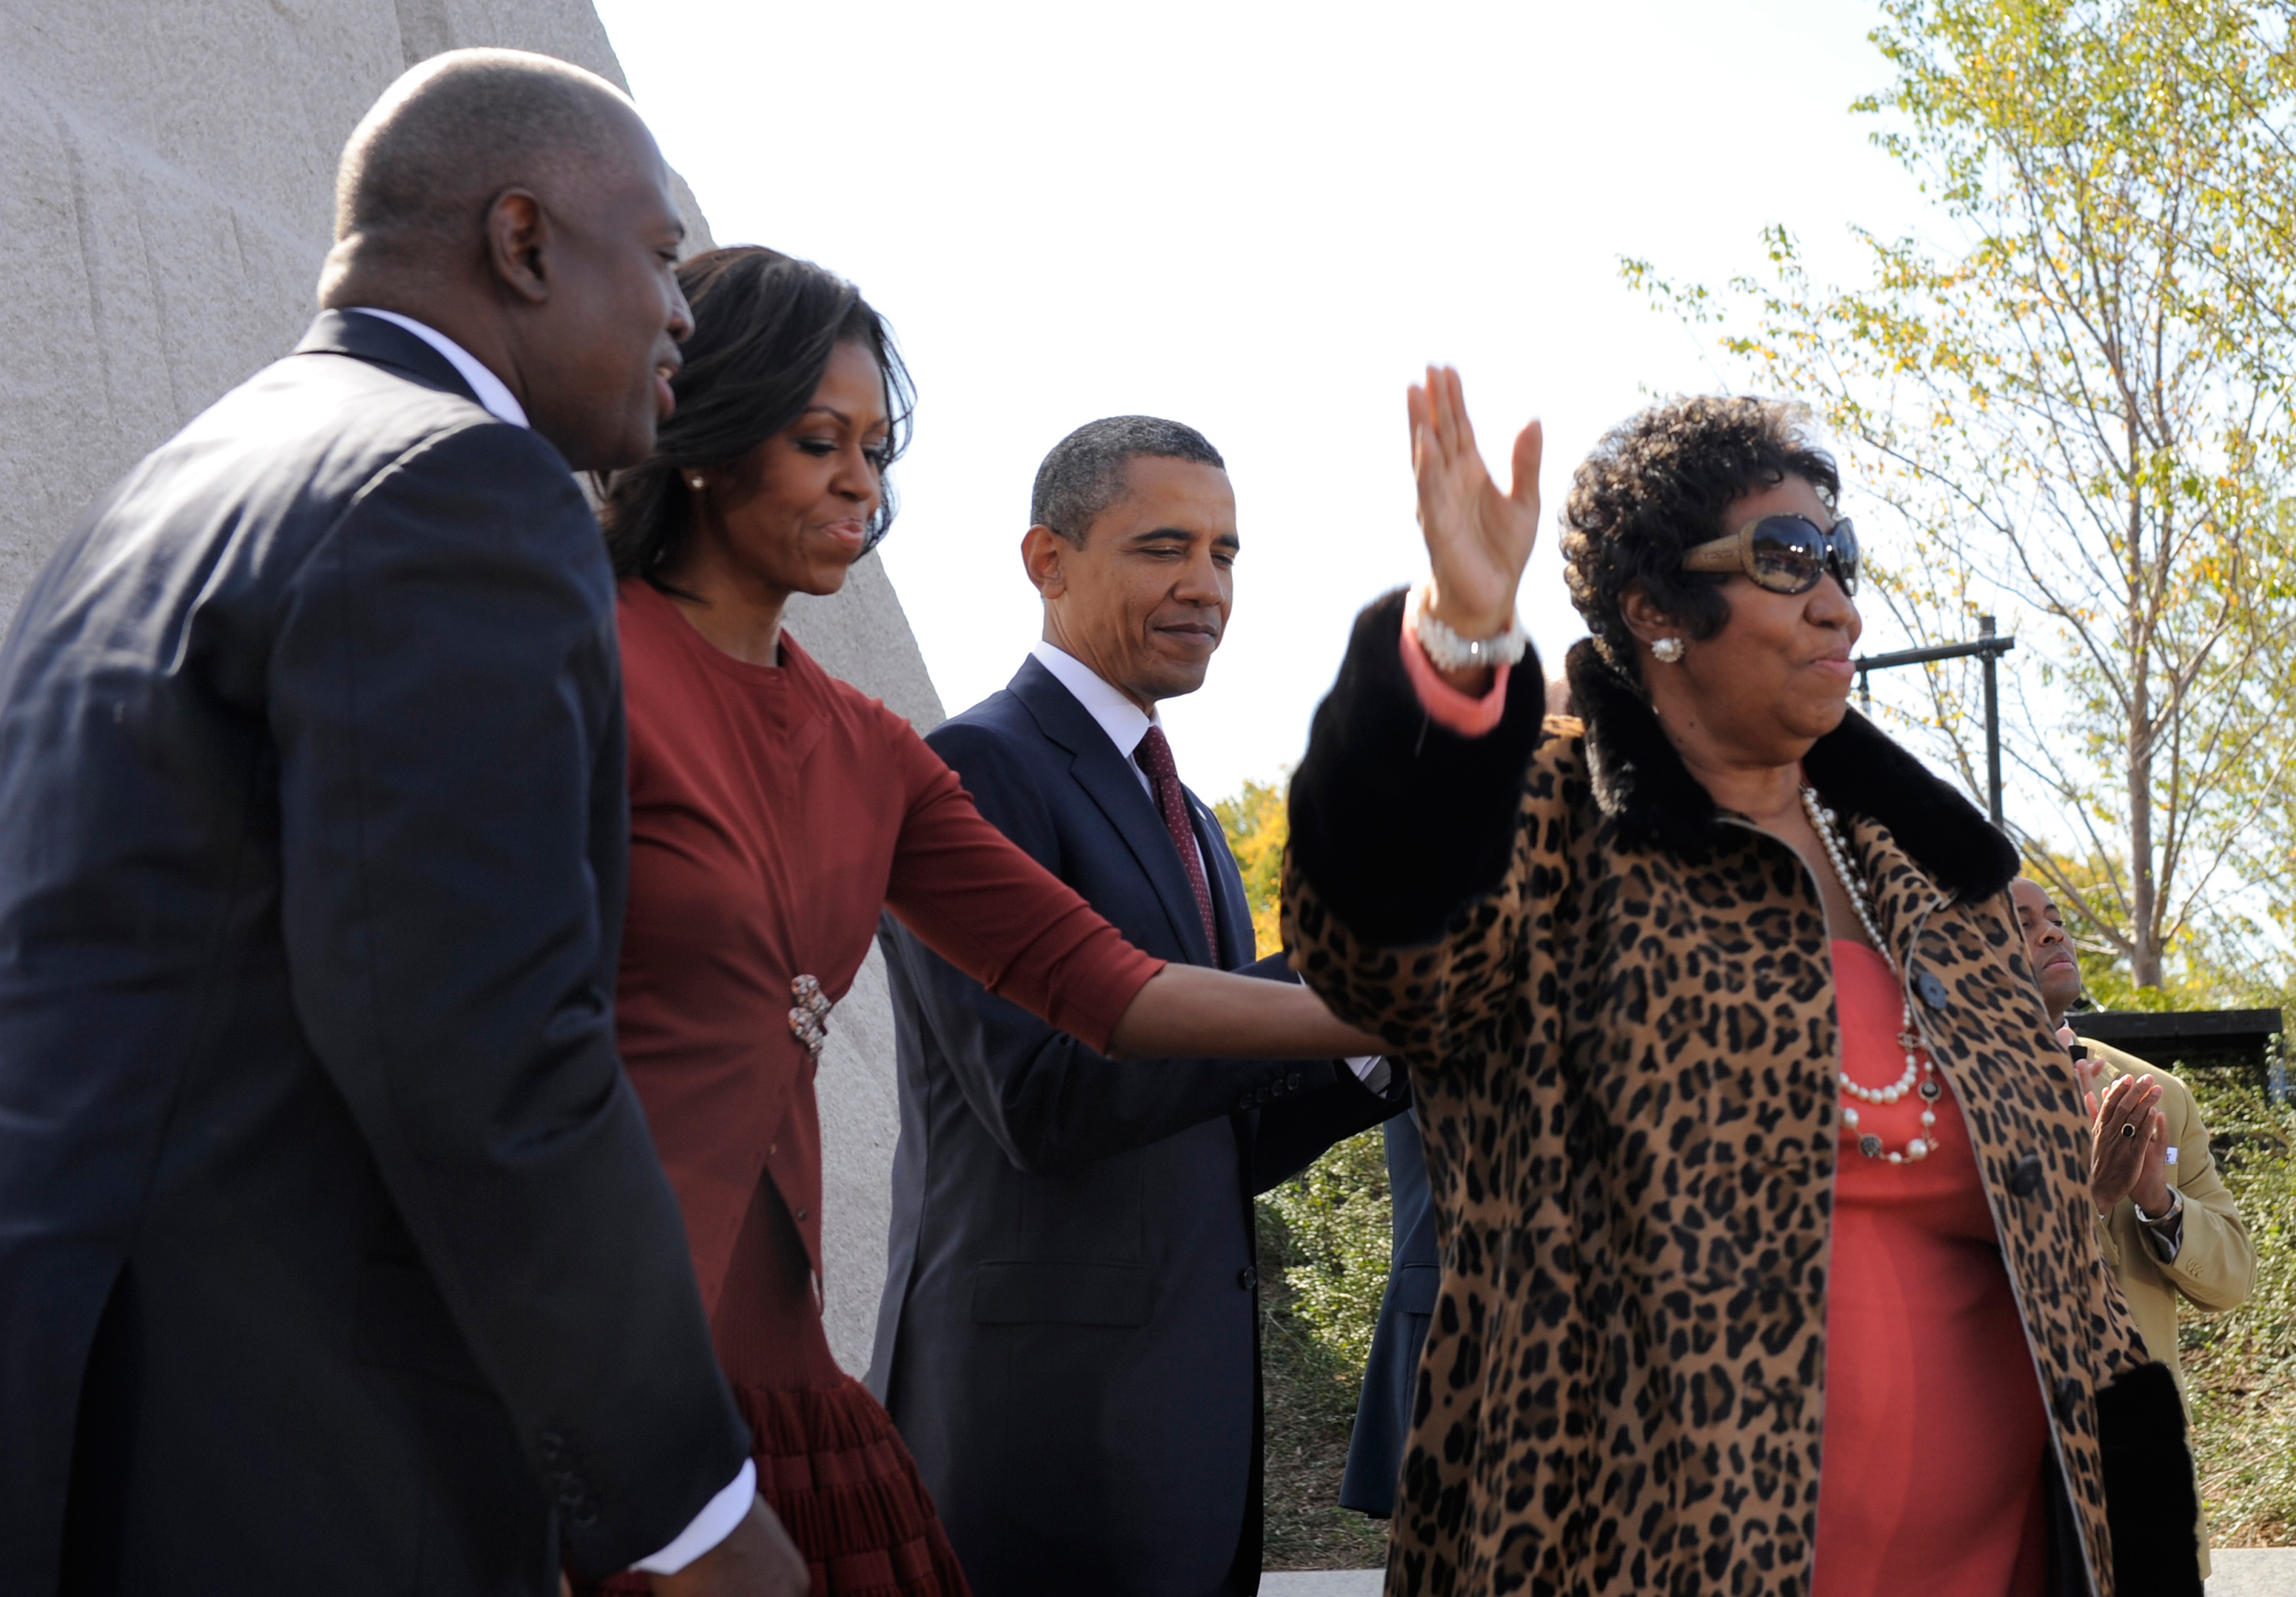 Aretha Franklin, right, finishes her performance with President Barack Obama, first lady Michelle Obama and Harry Johnson, president and CEO of the MLK National Memorial Project Fund as they attend the dedication of the Martin Luther King, Jr. Memorial on the National Mall Oct. 16, 2011 in Washington, DC.